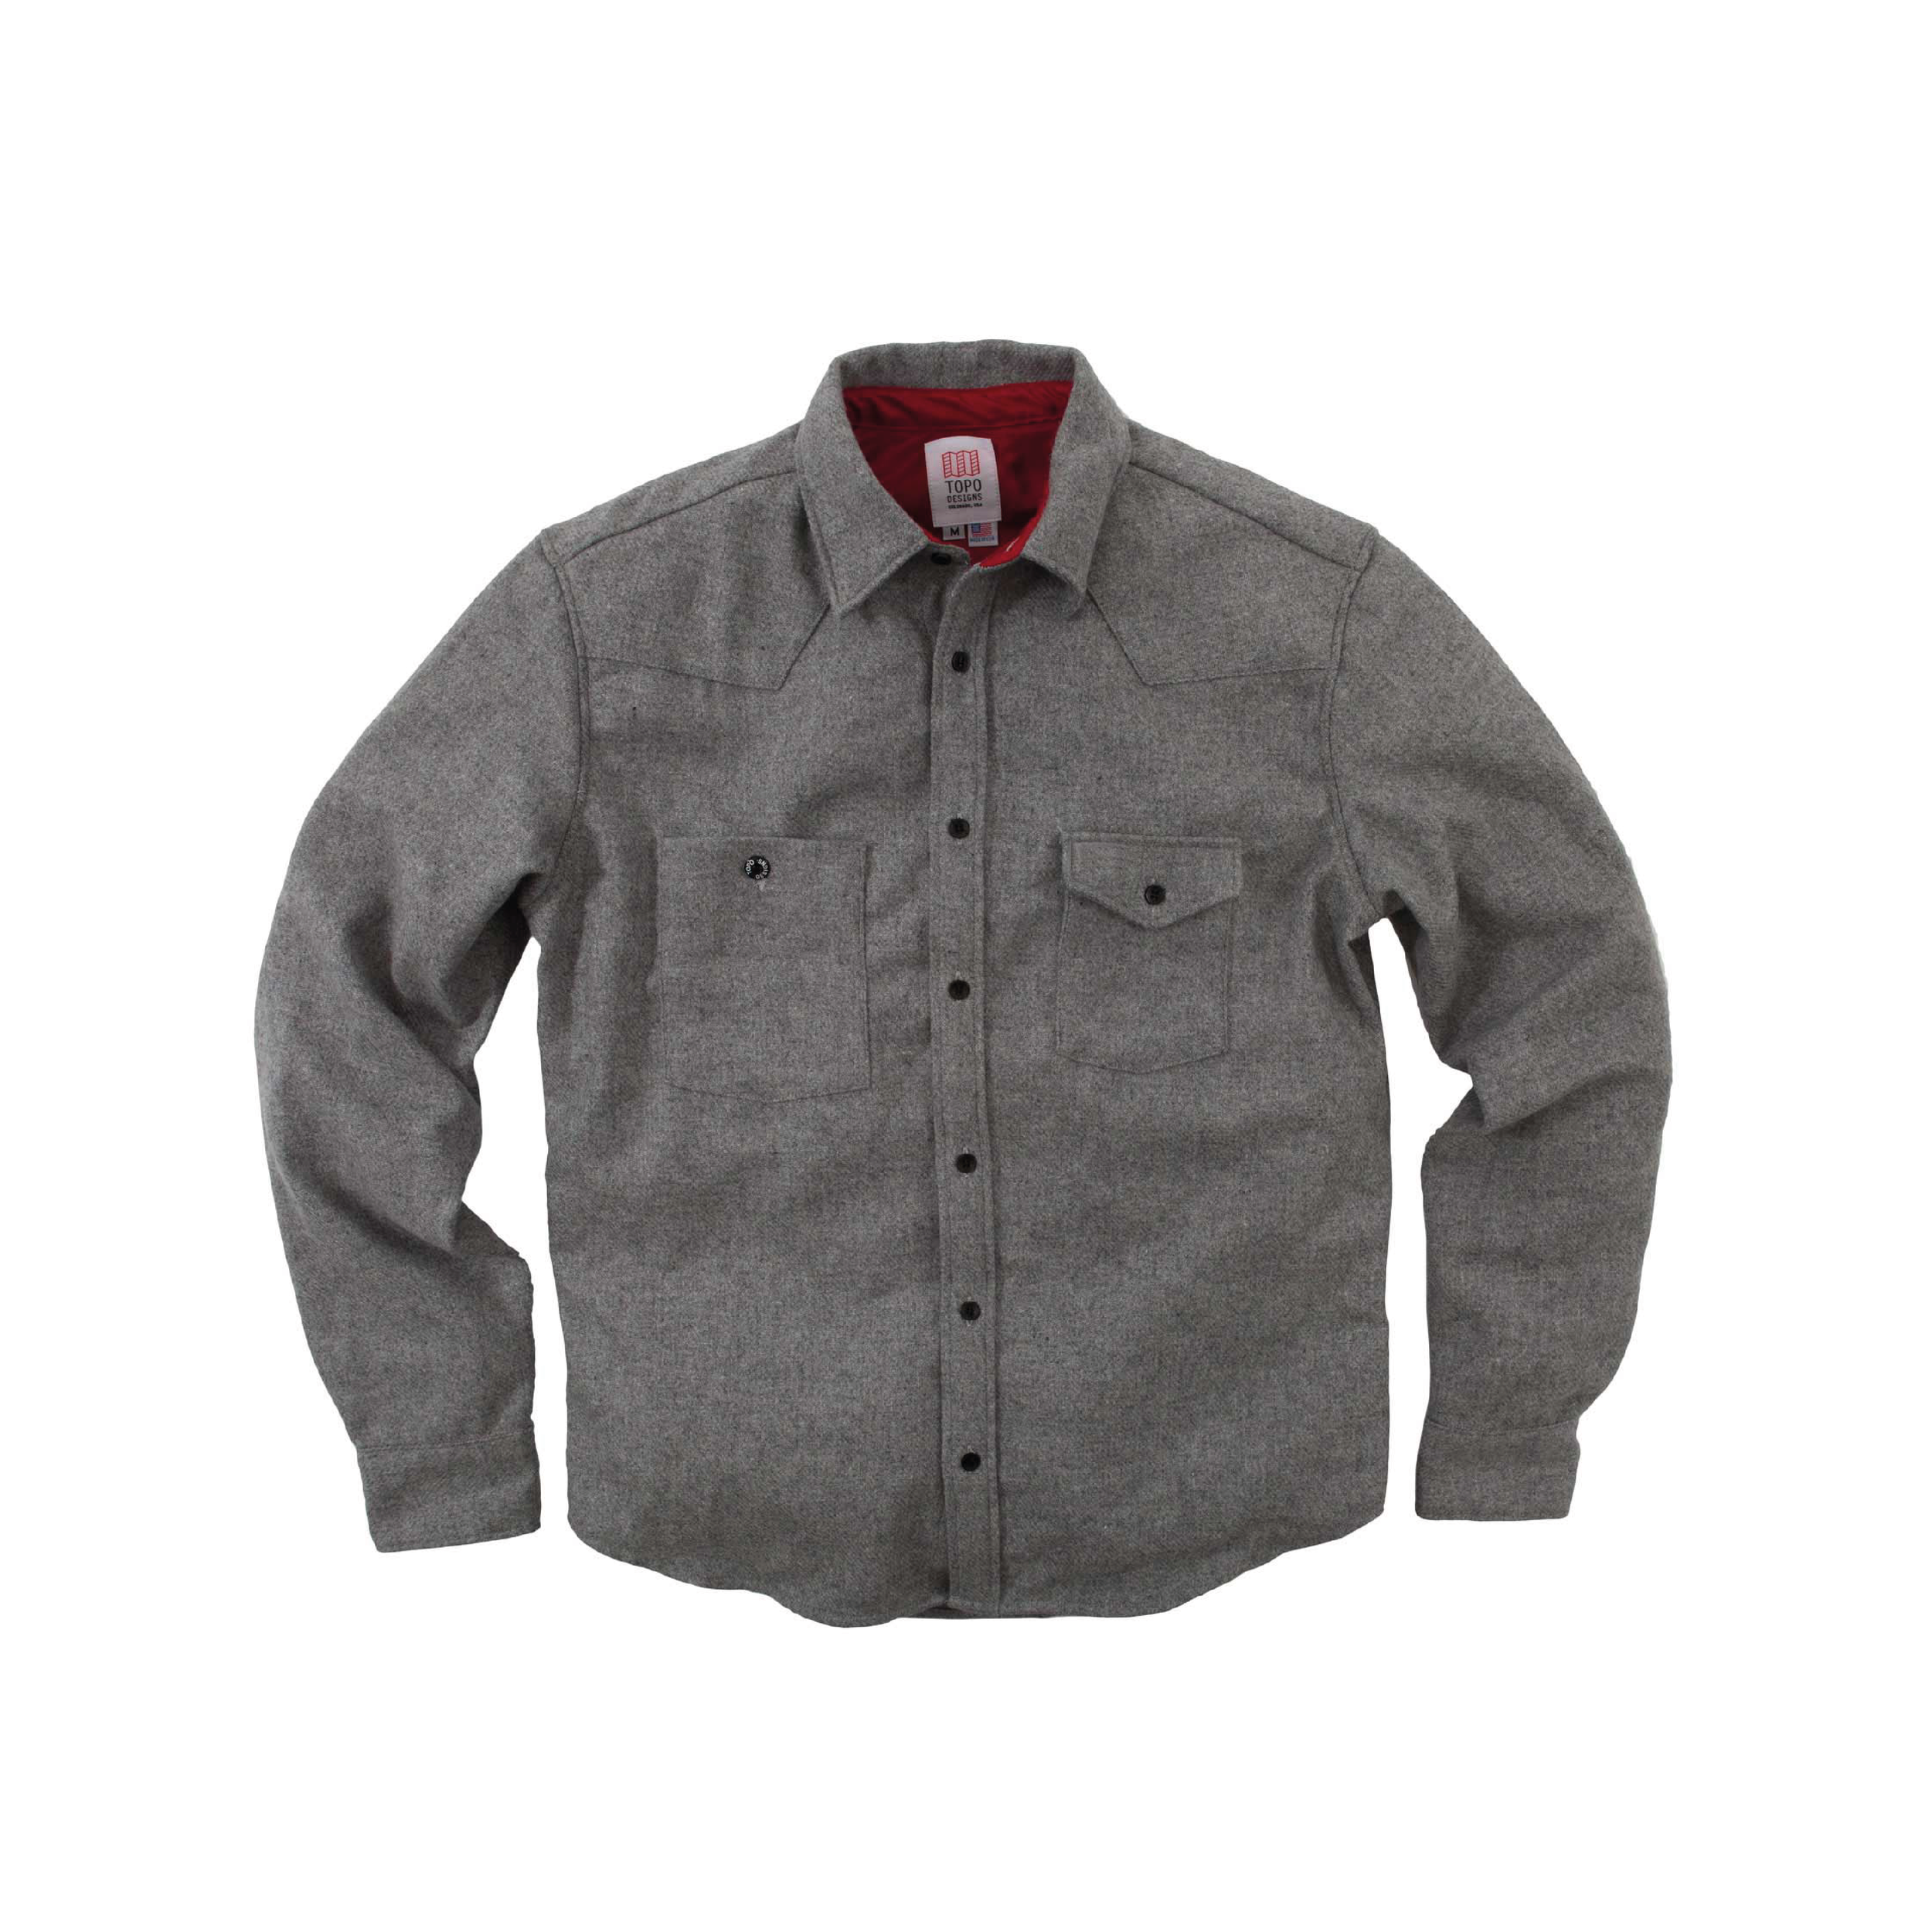 WORK SHIRT    By  Topo Designs     The perfect work shirt to rely on for when durability and versatility is the aim of the game.    SHOP NOW          £90